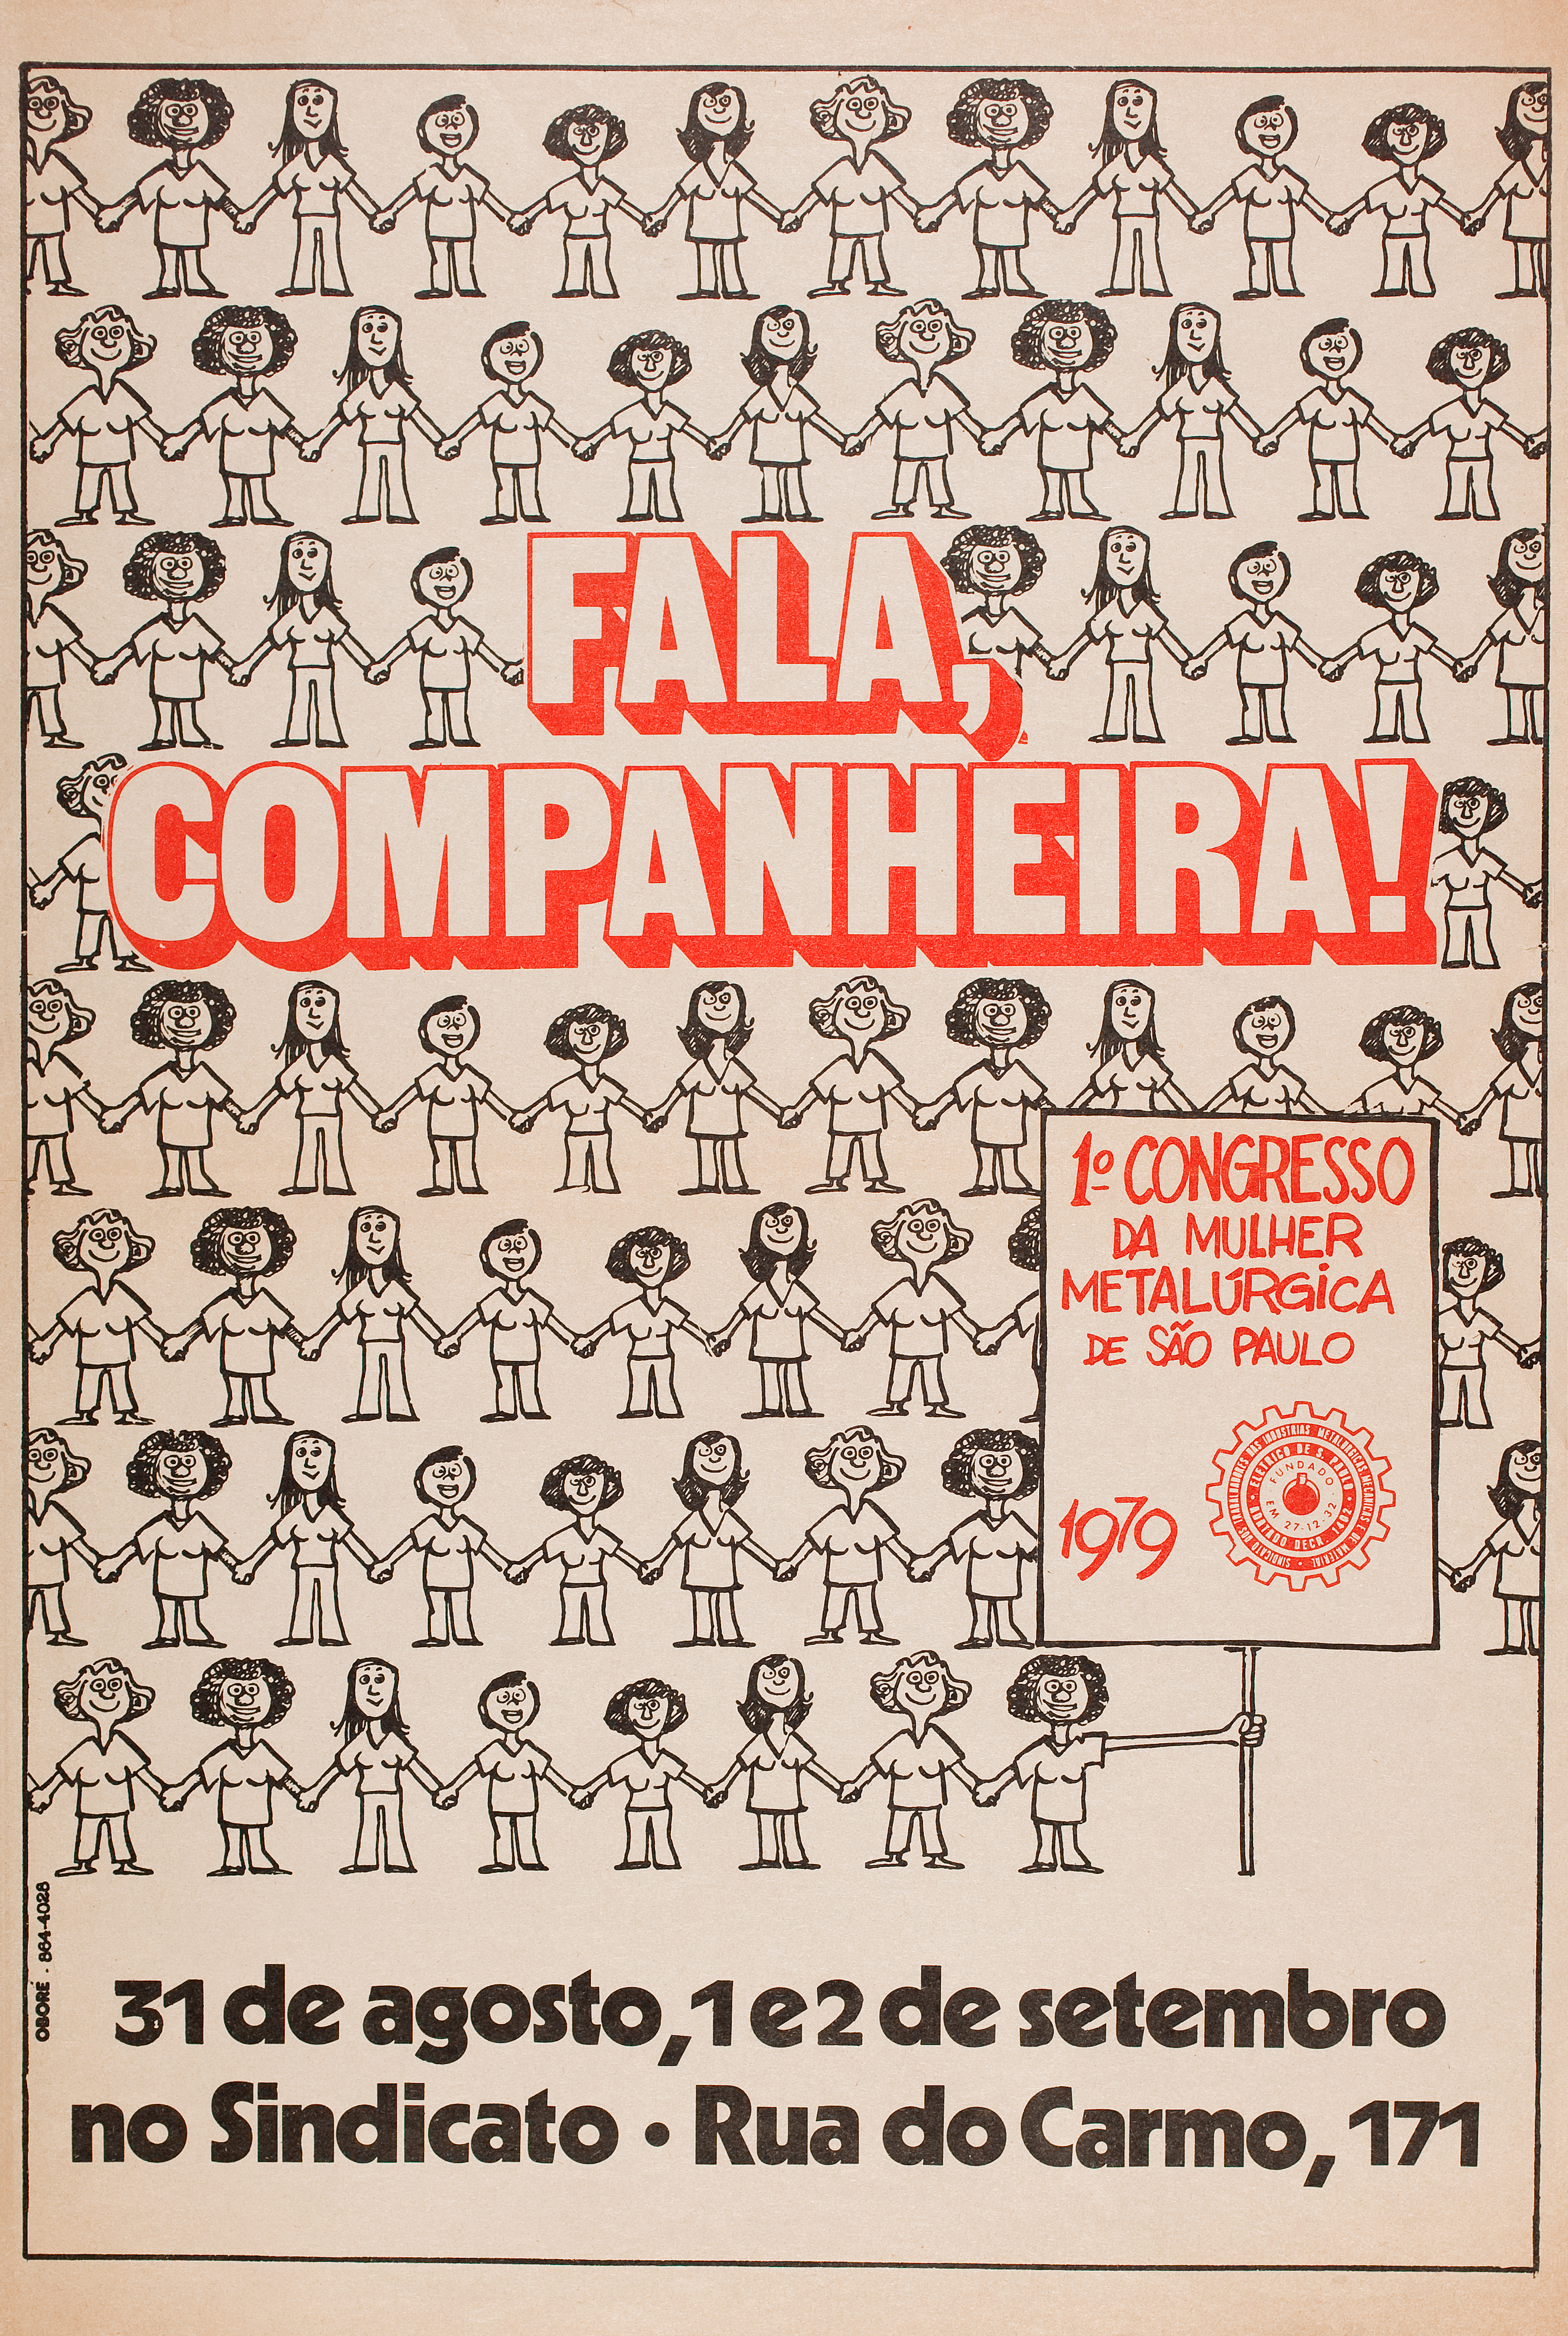 941cb04d5 Poster for the First São Paulo Women Metalworkers  Conference in 1979.